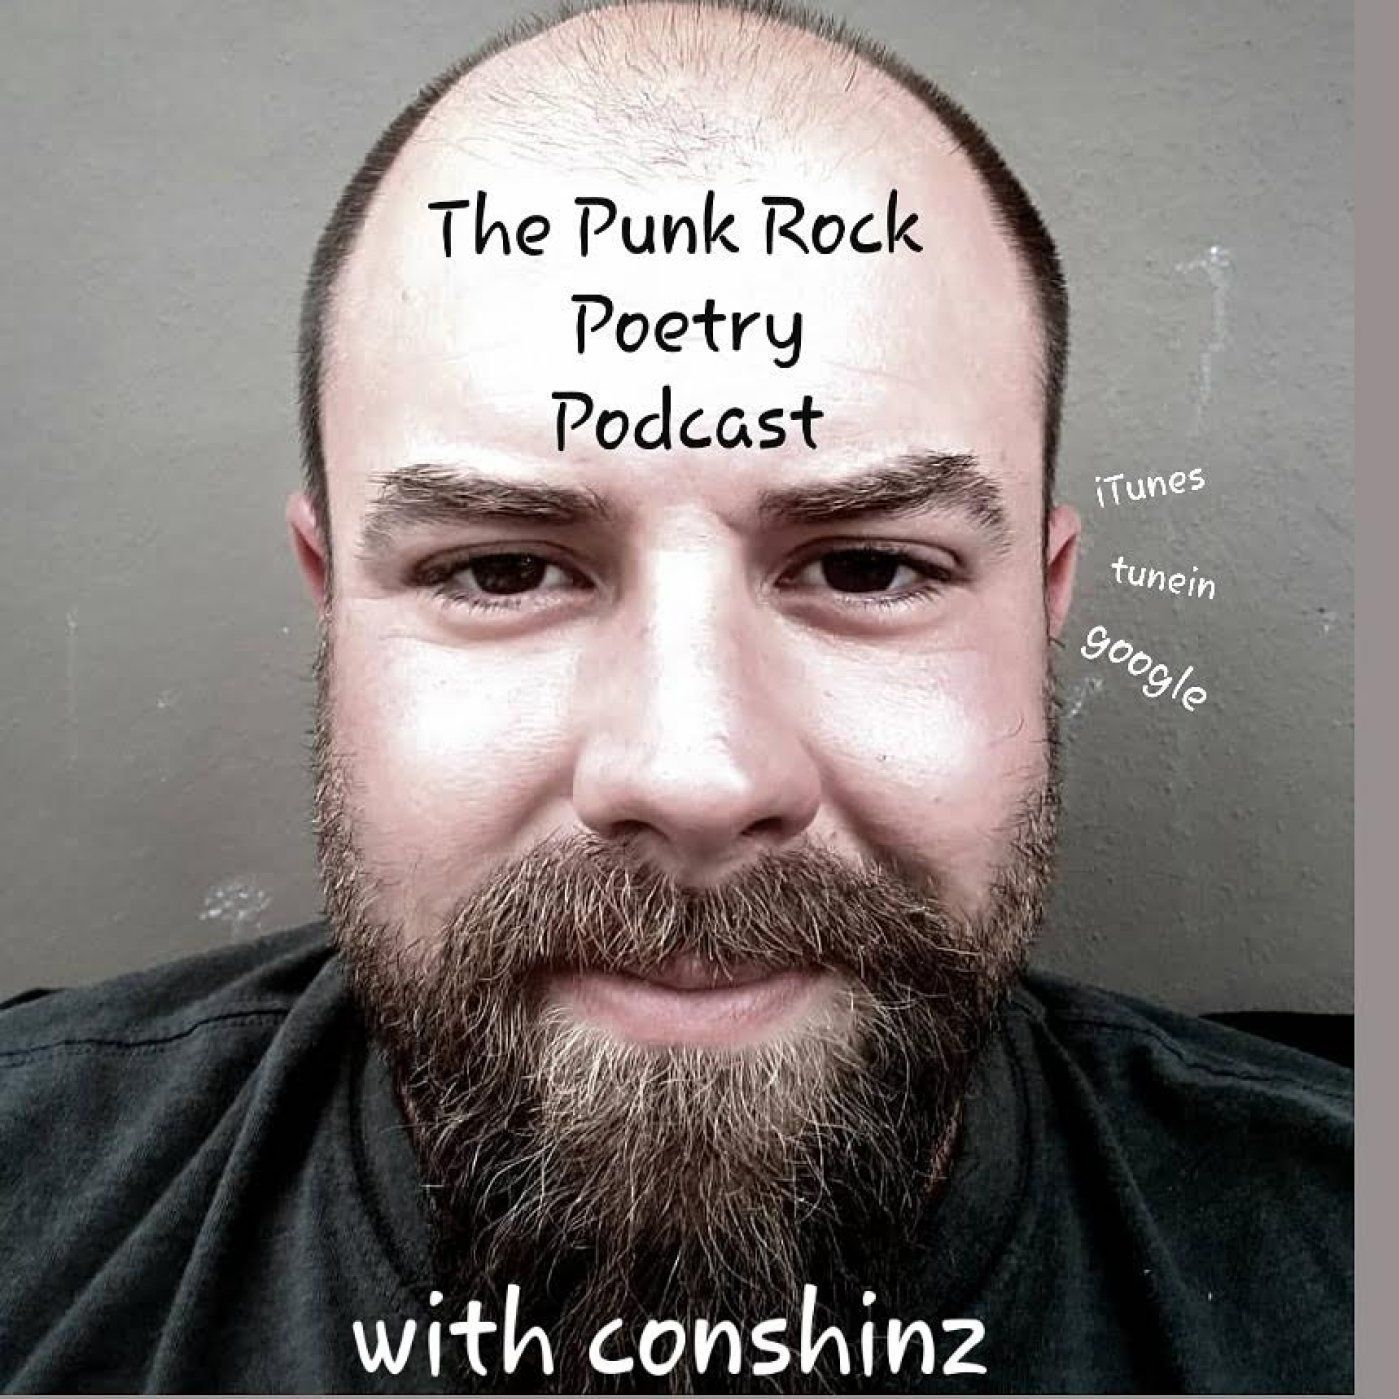 The Punk Rock Poetry Podcast - Sept 17 2019